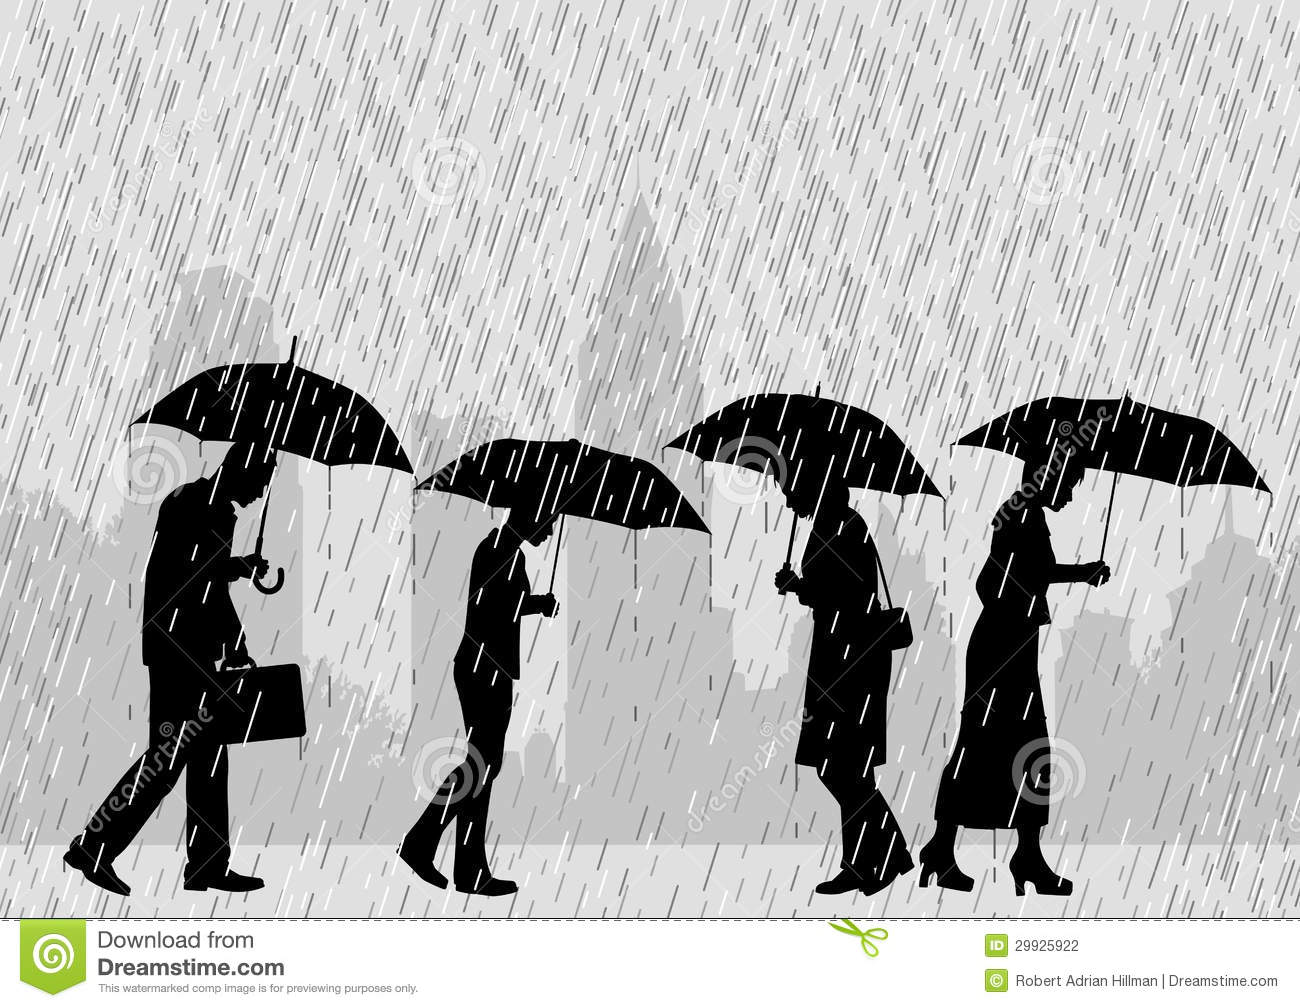 ... of people on a city street walking through rain with umbrellas